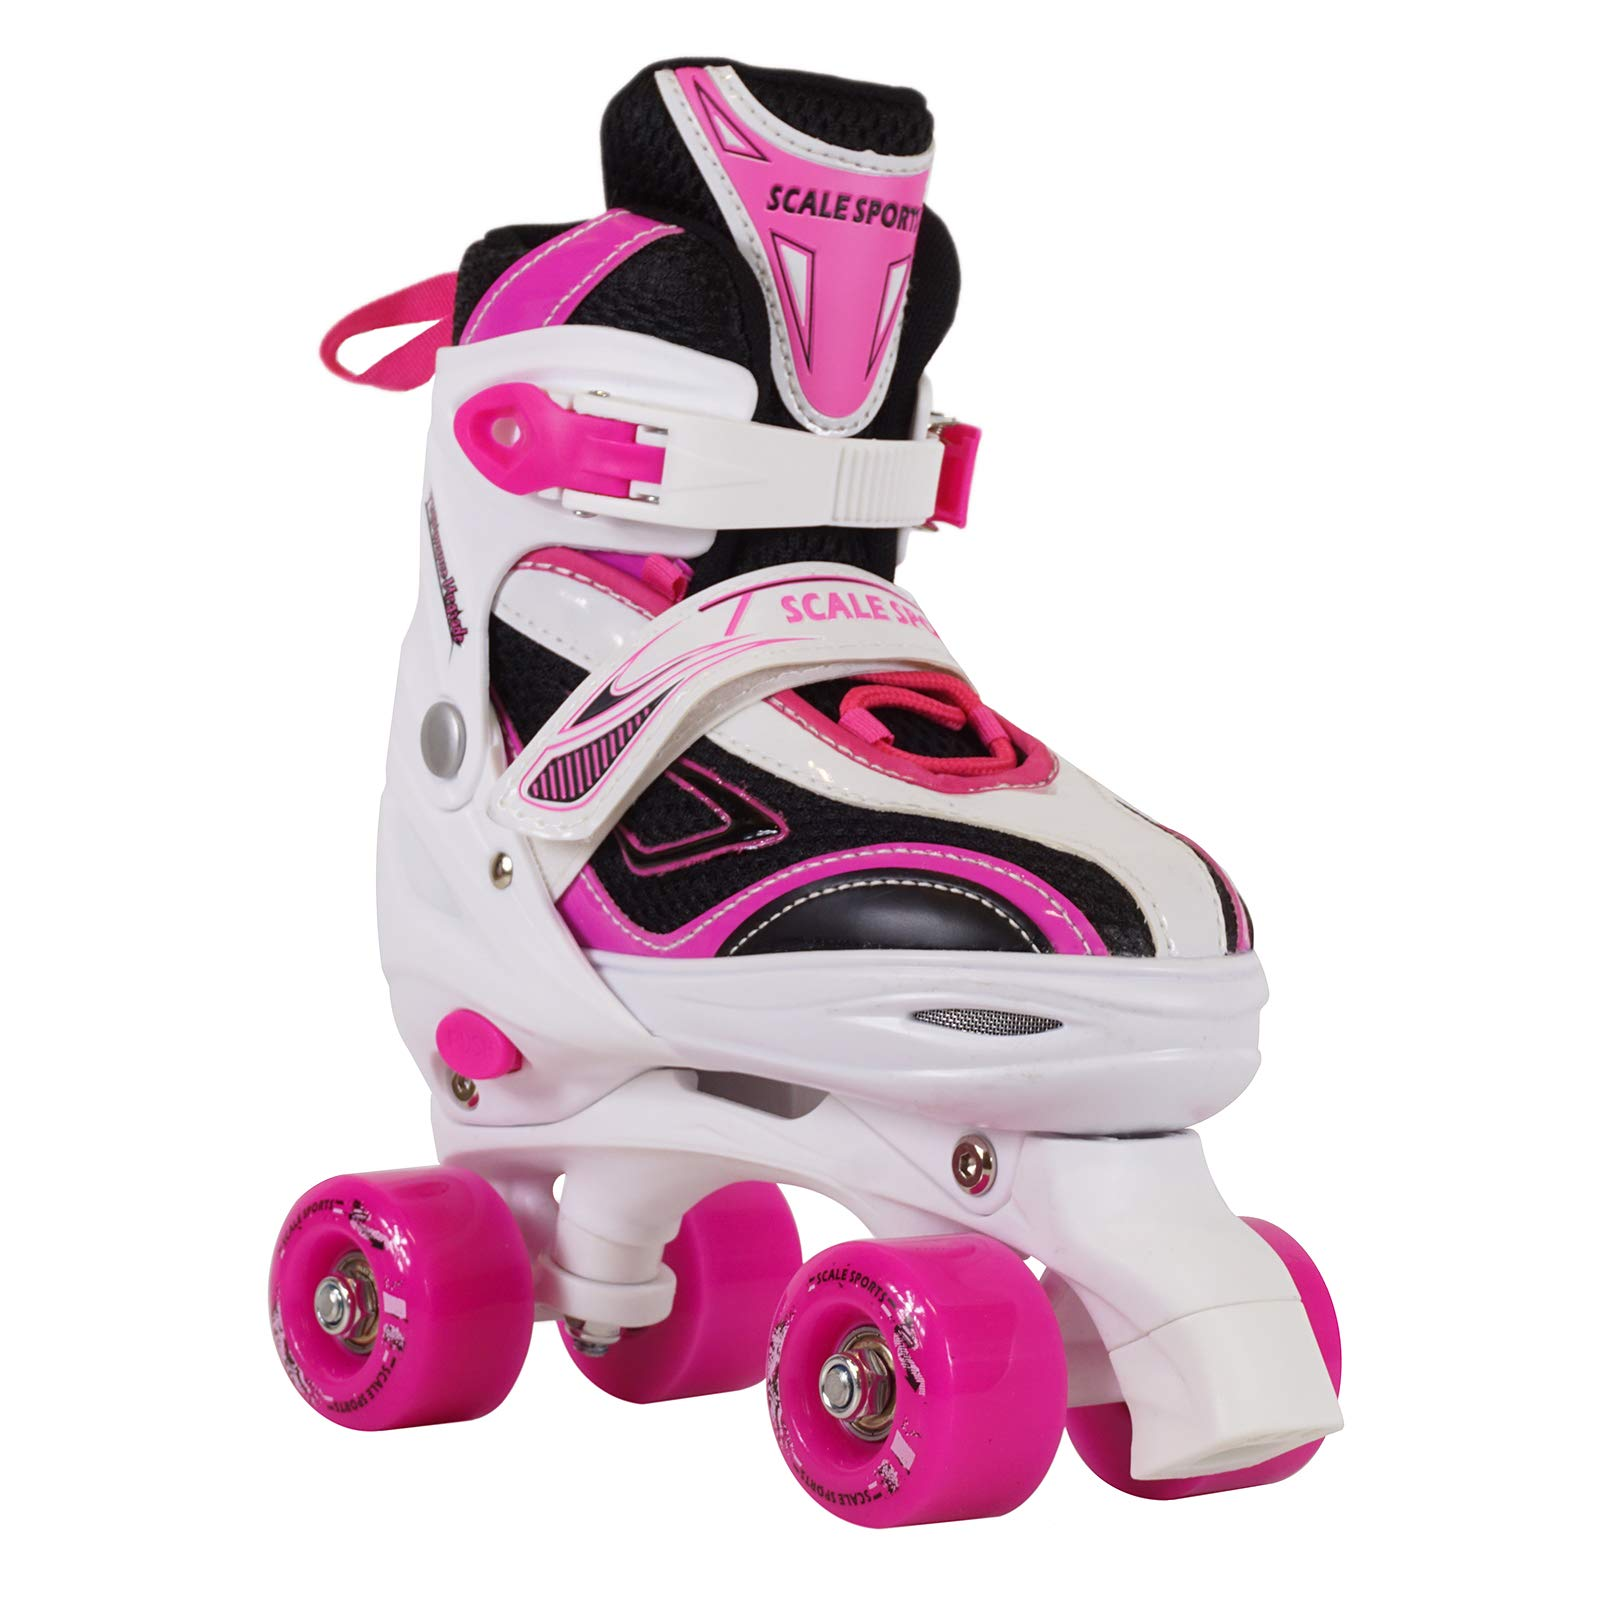 Scale Sports Adjustable Roller Skates for Kids Teen and Ladies Large Size Pink